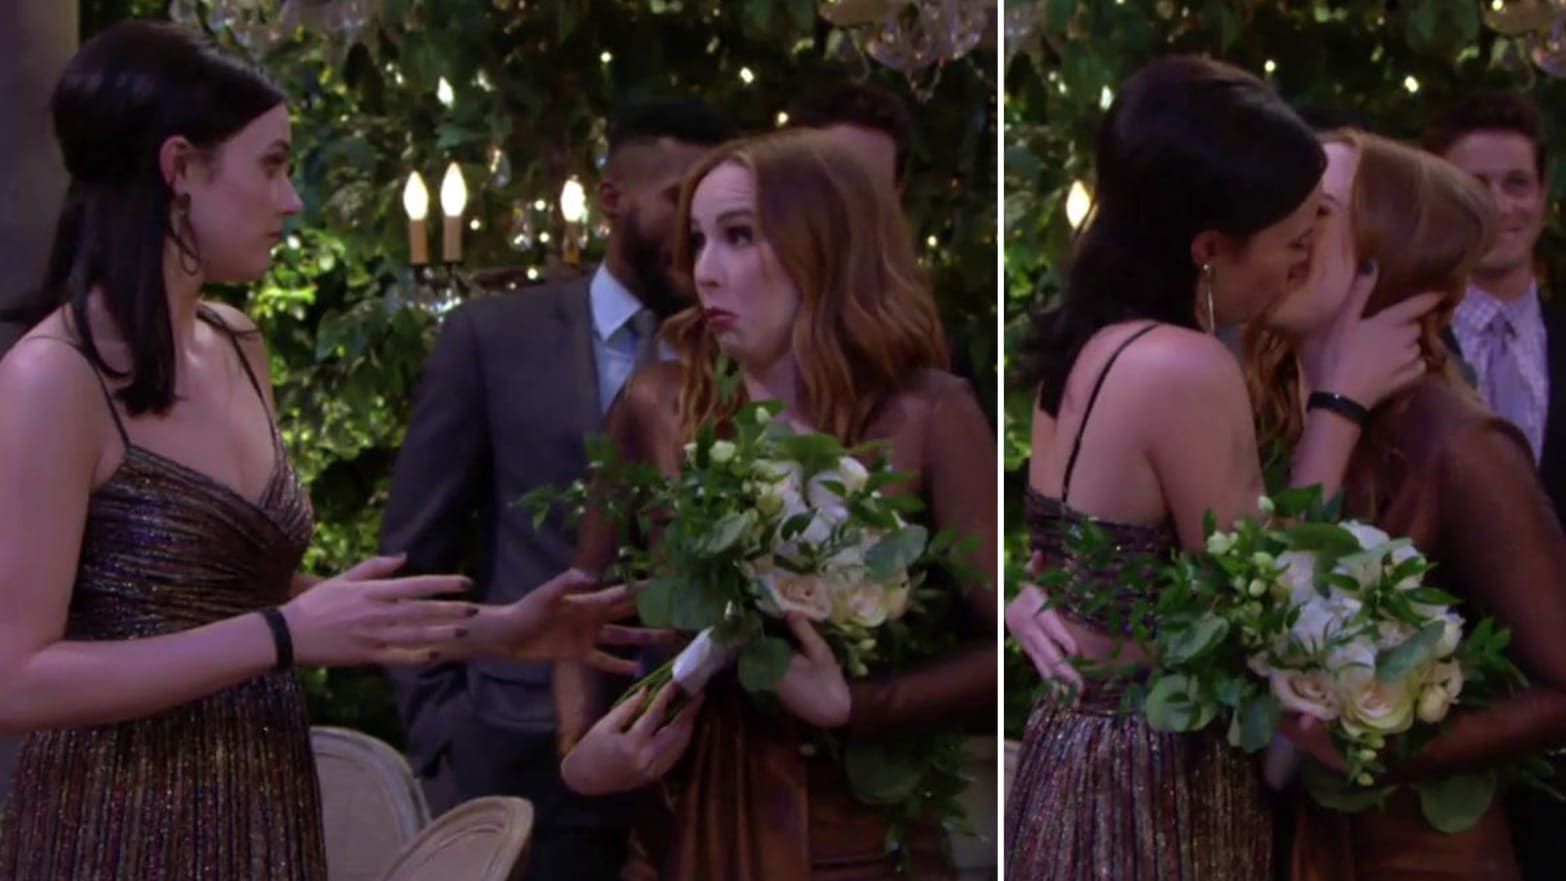 This 'Young and the Restless' 'Teriah' Kiss Is One of TV's Best LGBTQ Moments of the Year